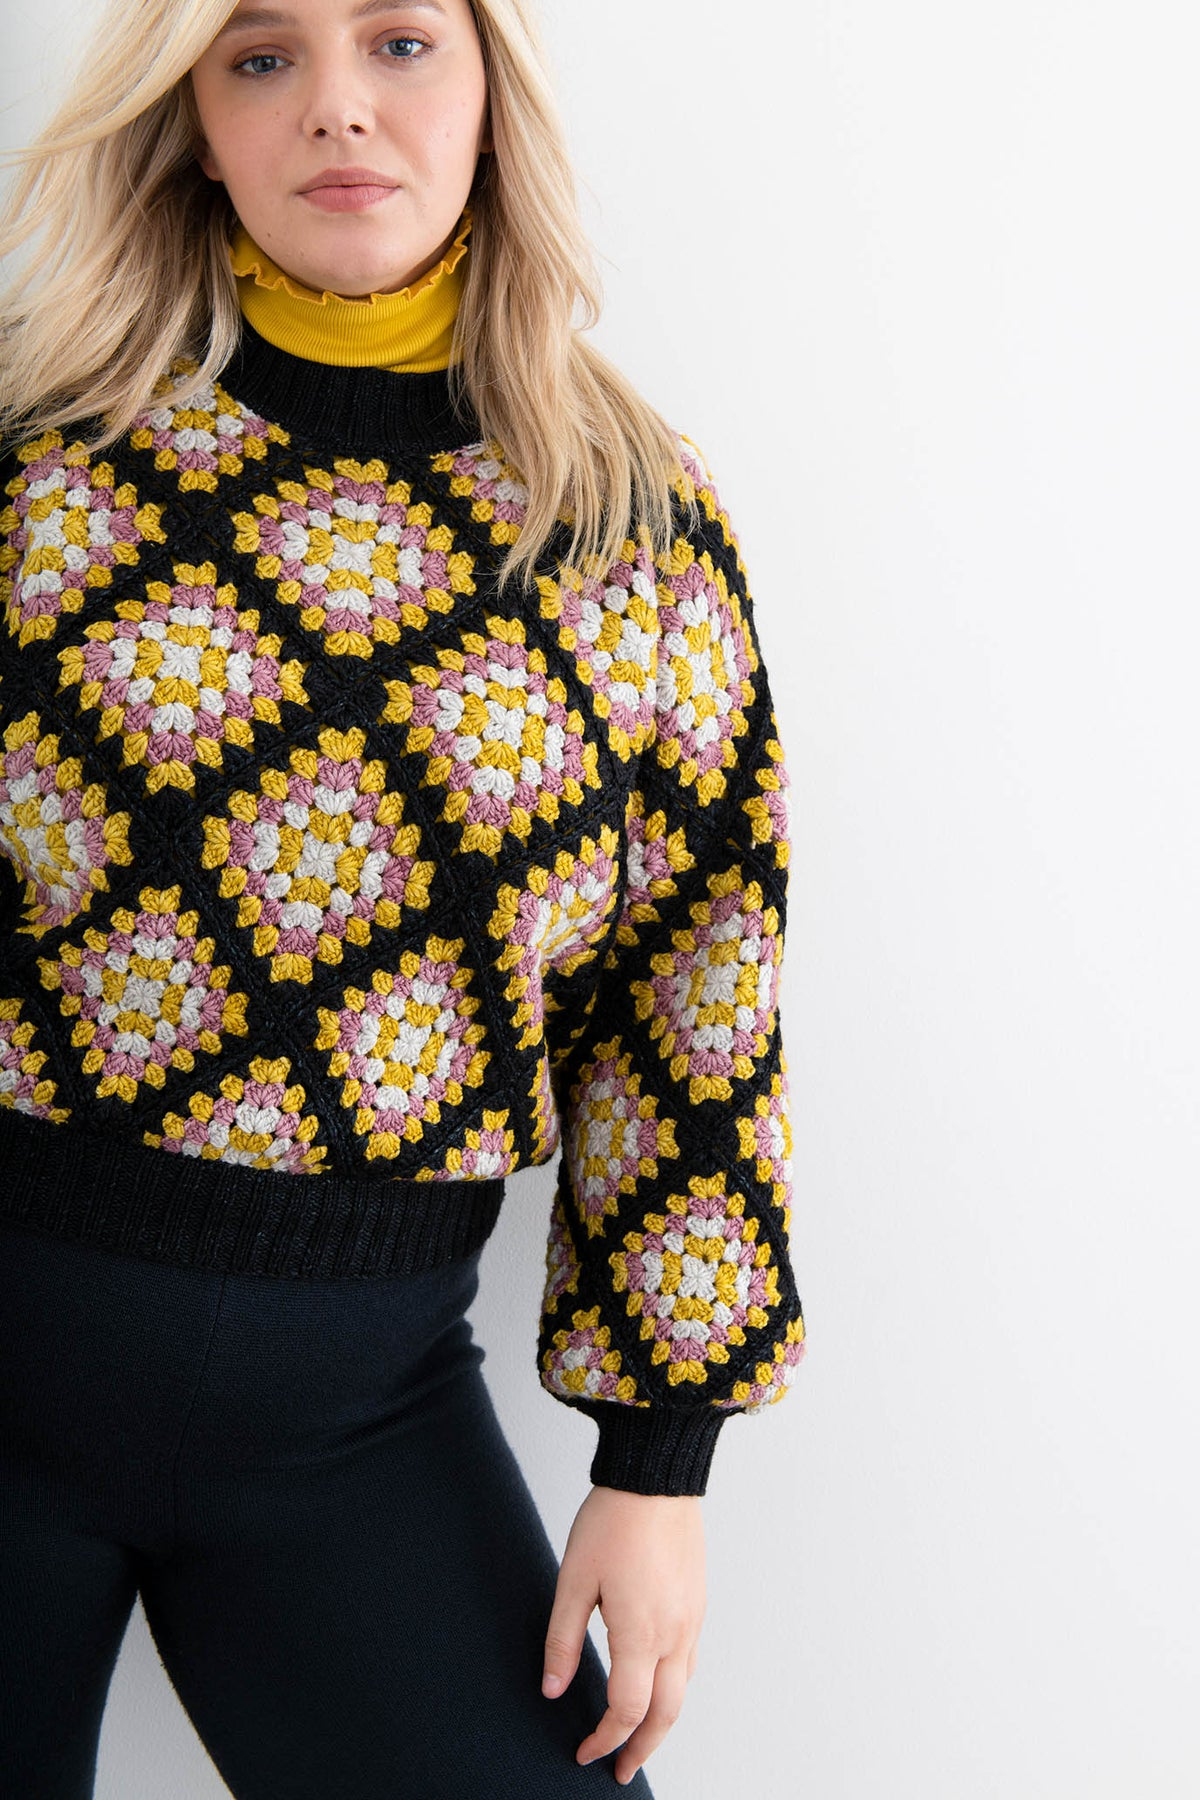 Adult Crochet Square Sweater